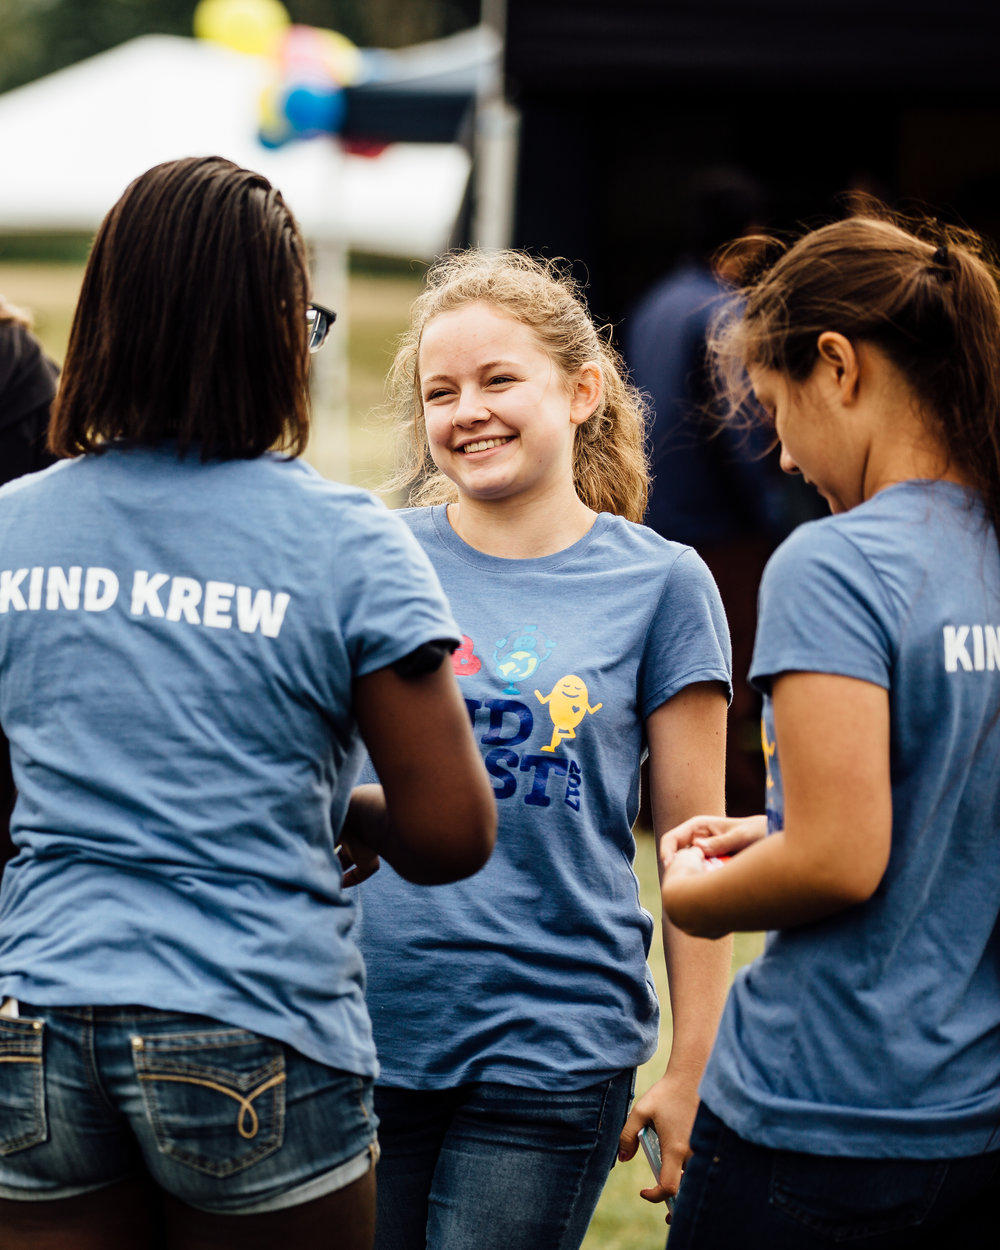 Kind Fest-Andrew Brown Photography-PRINT-35.jpg